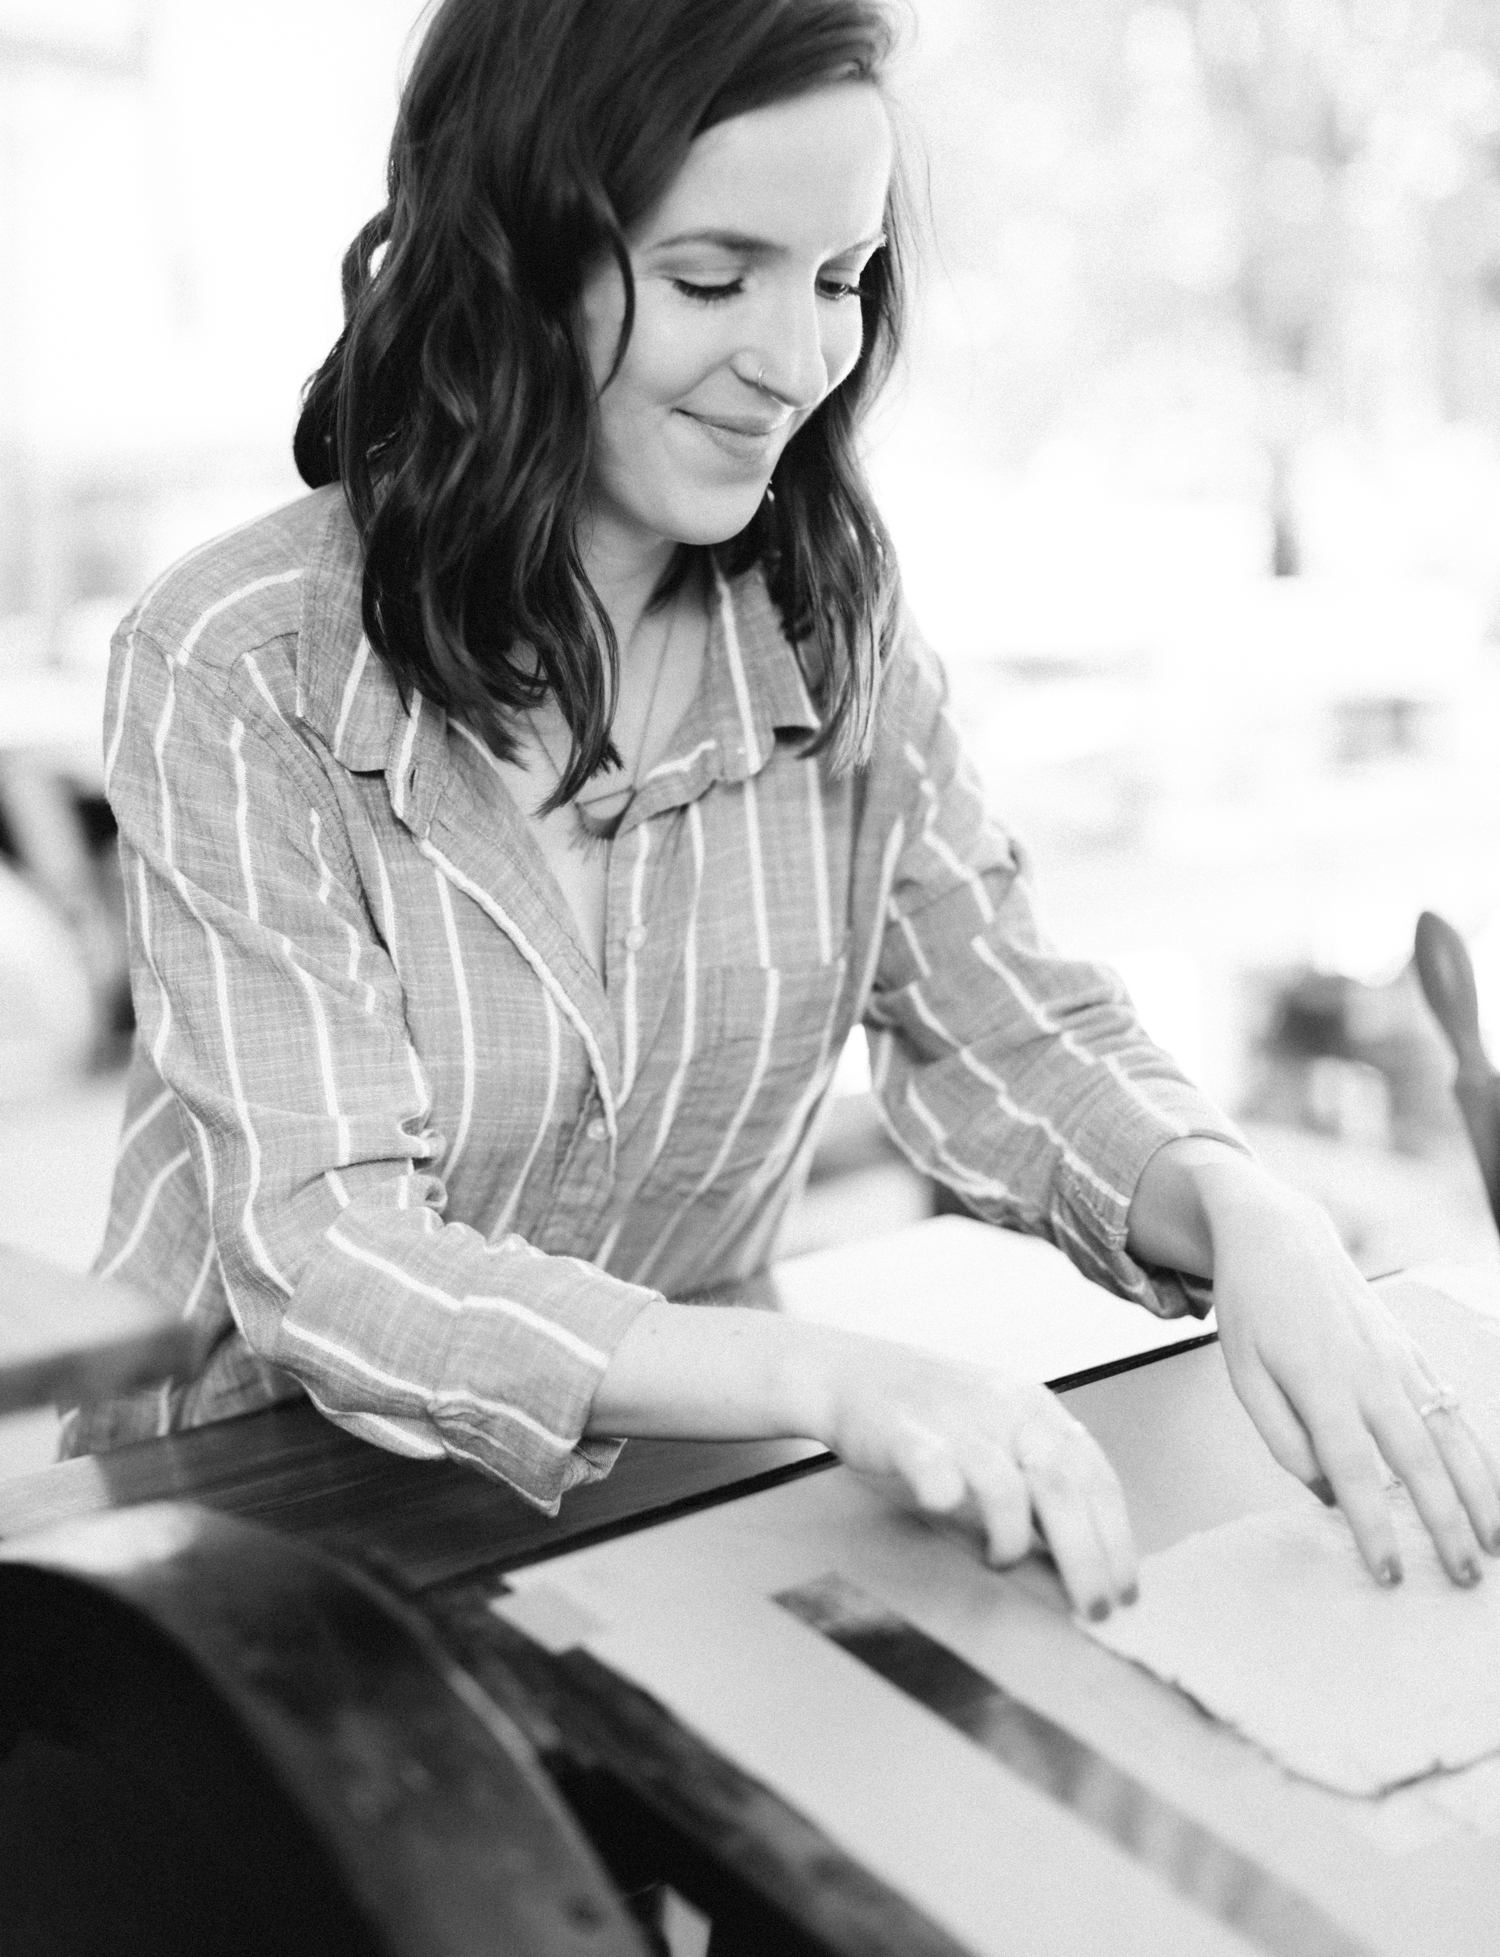 A designer and business owner adjusts paper on her antique letterpress during her brand photos in Detroit, Michigan